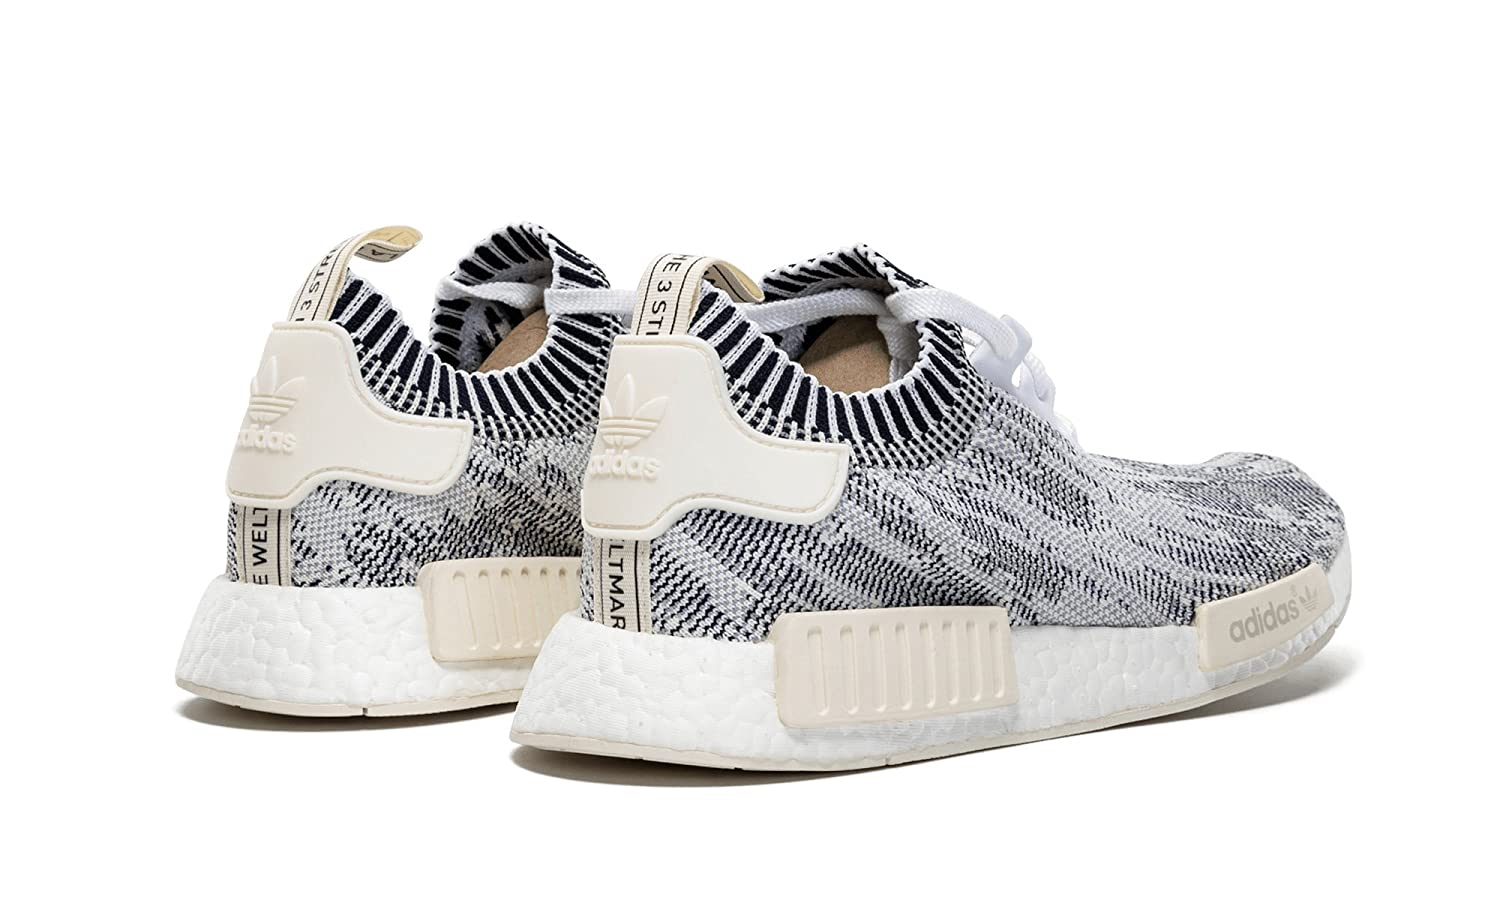 82fce274b9b adidas NMD R1 PK  CAMO Pack  - BA8600 - Size 8.5-UK  Amazon.co.uk  Shoes    Bags